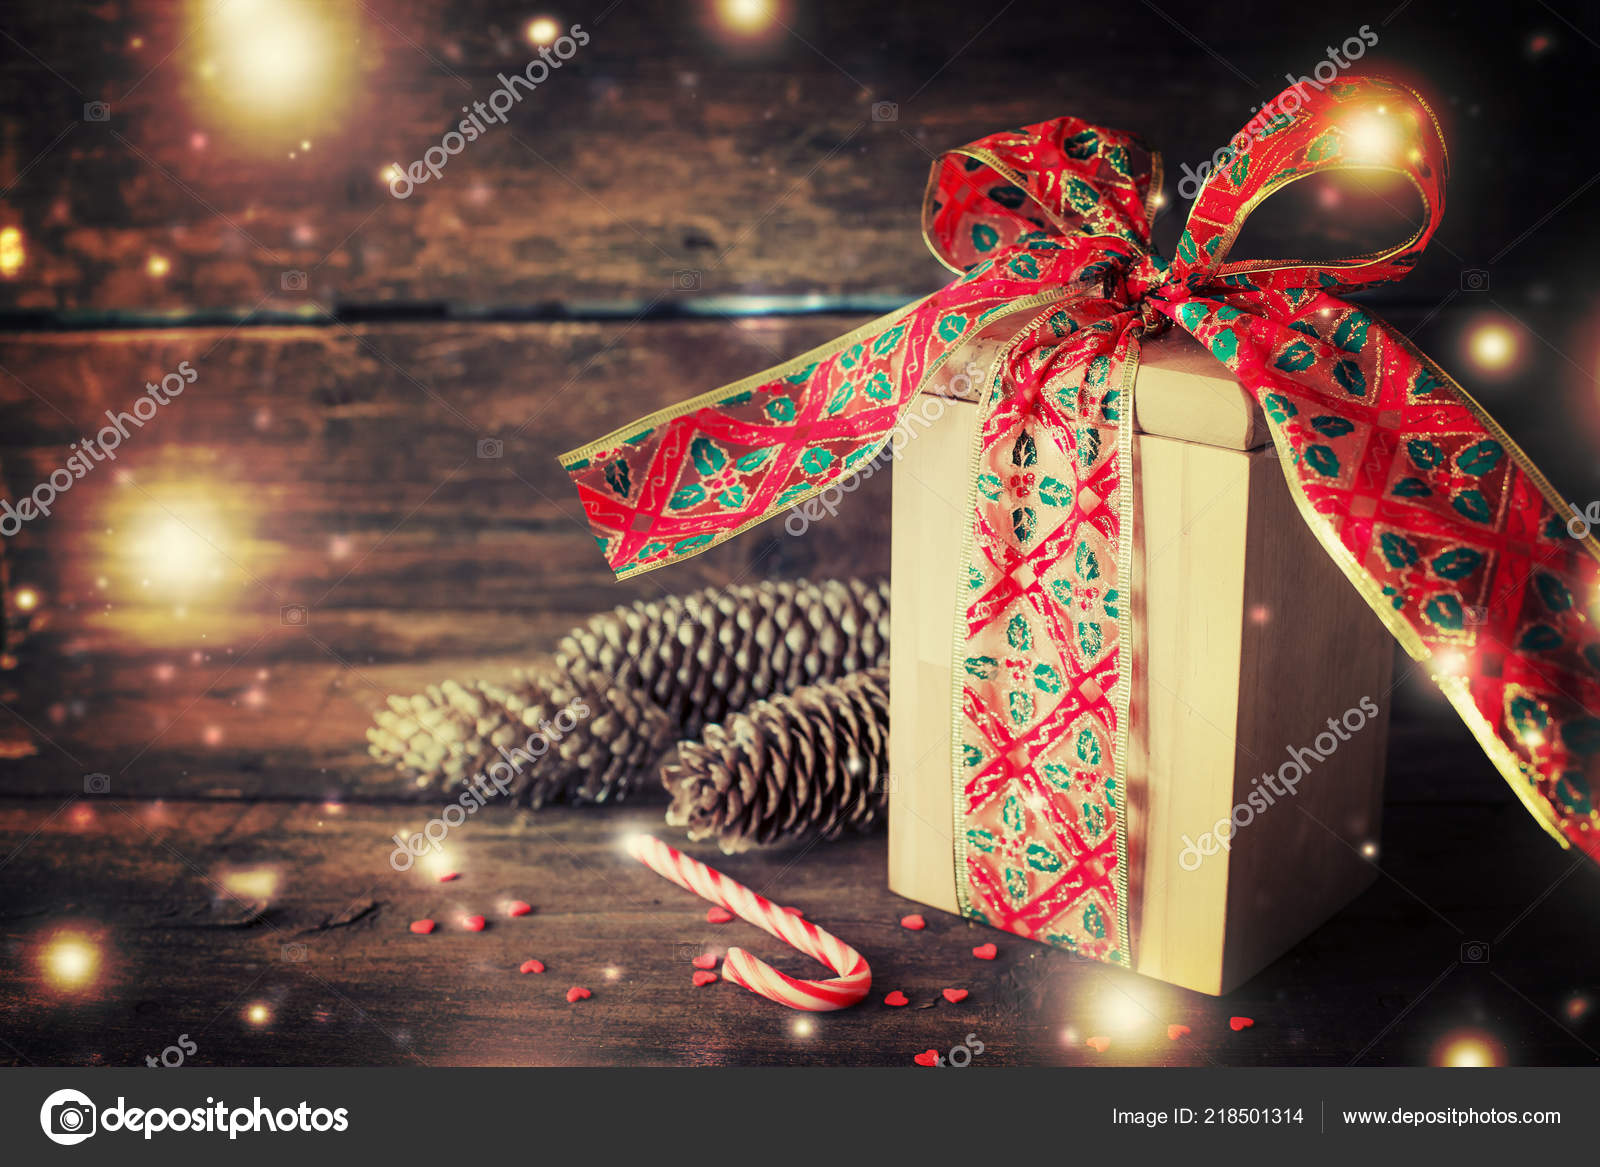 Amazing Christmas Decorations Holiday Decorations Concept